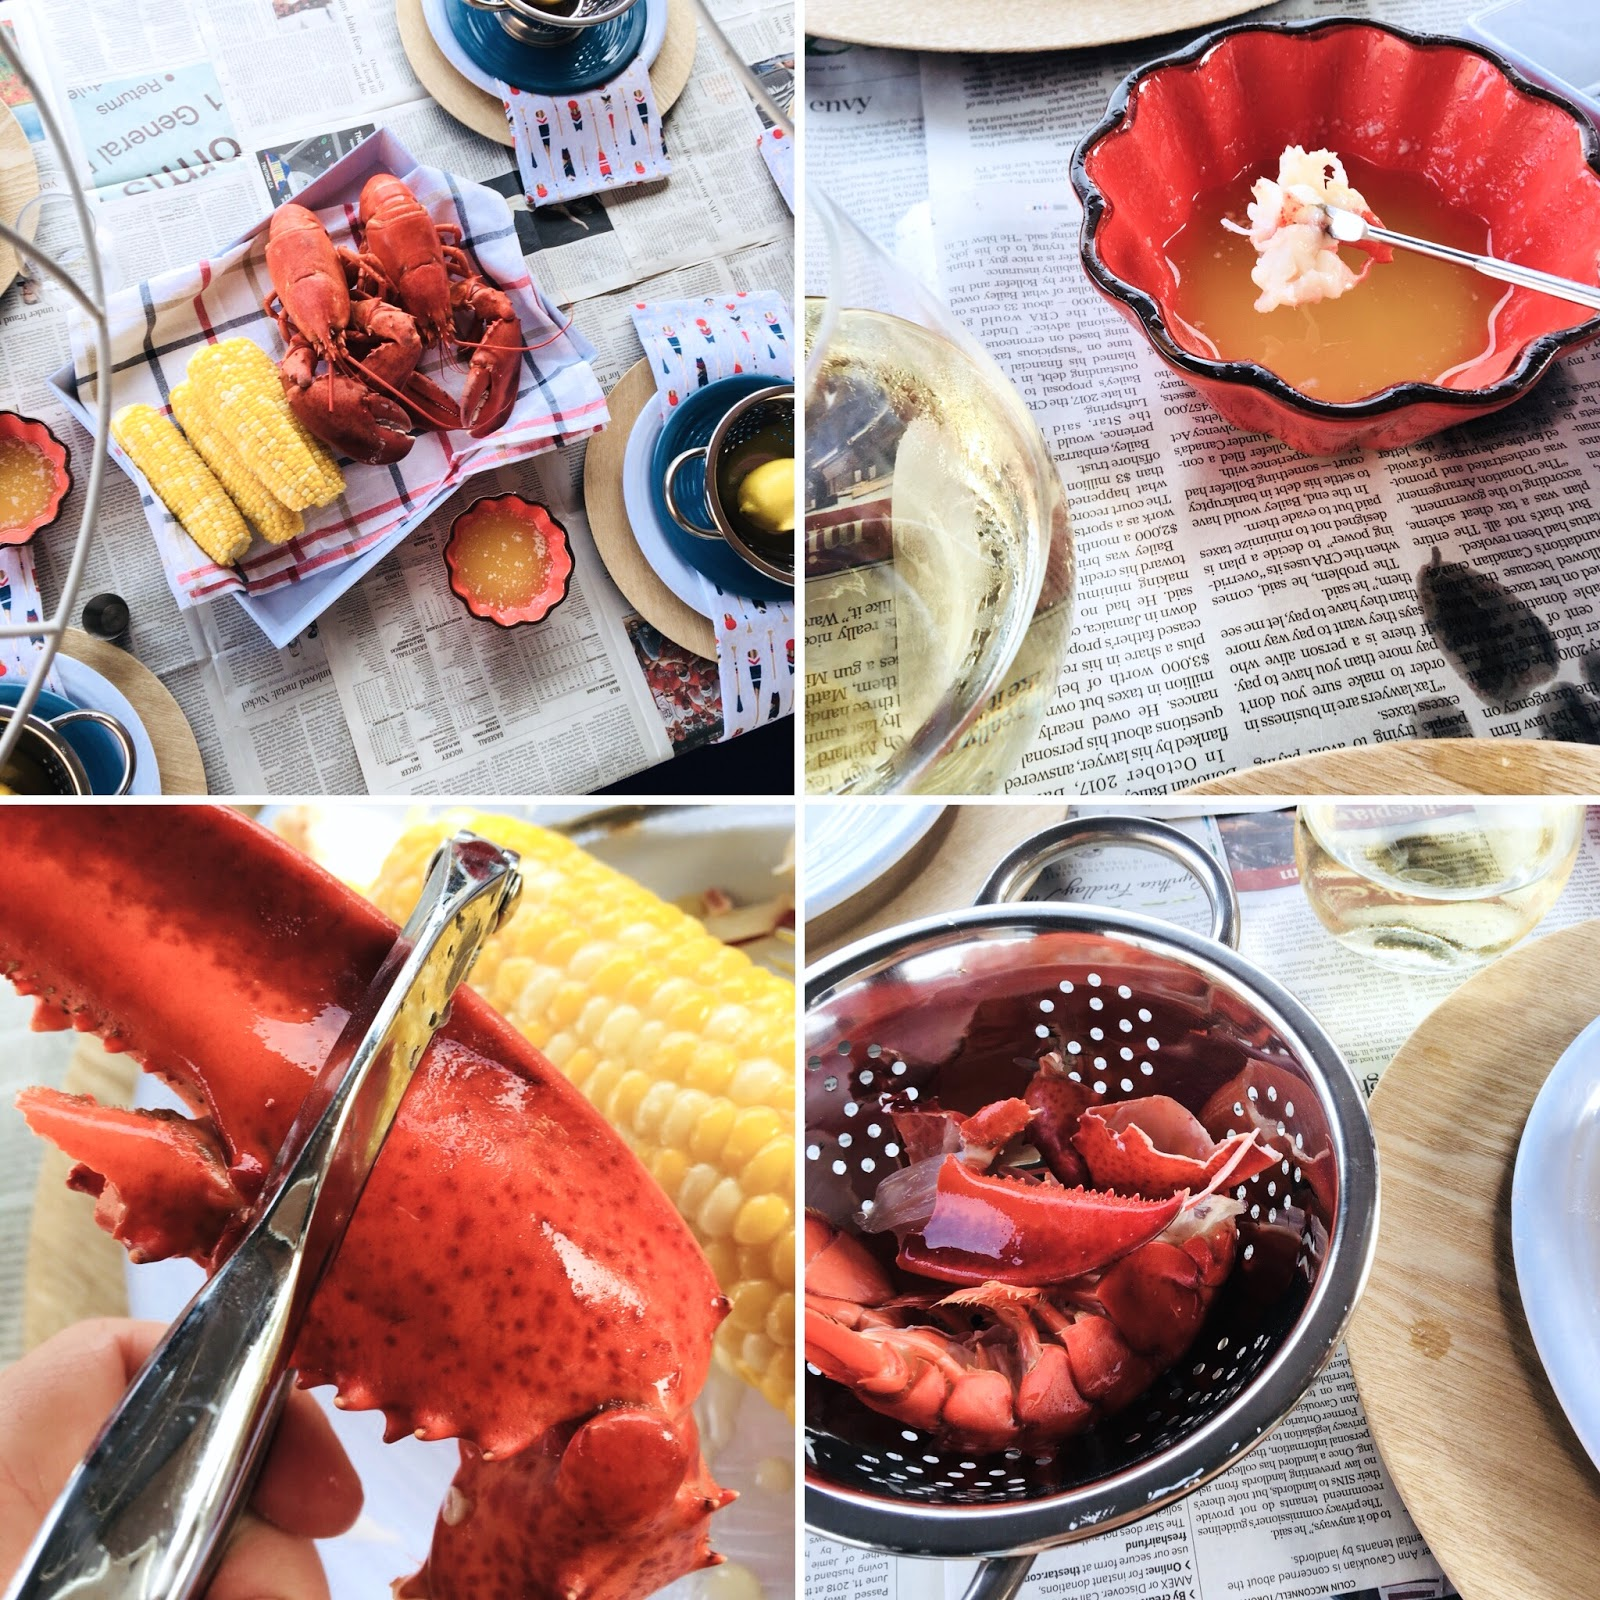 Lobster-dinner-table-setting-KSP-harlow-and-thistle-11